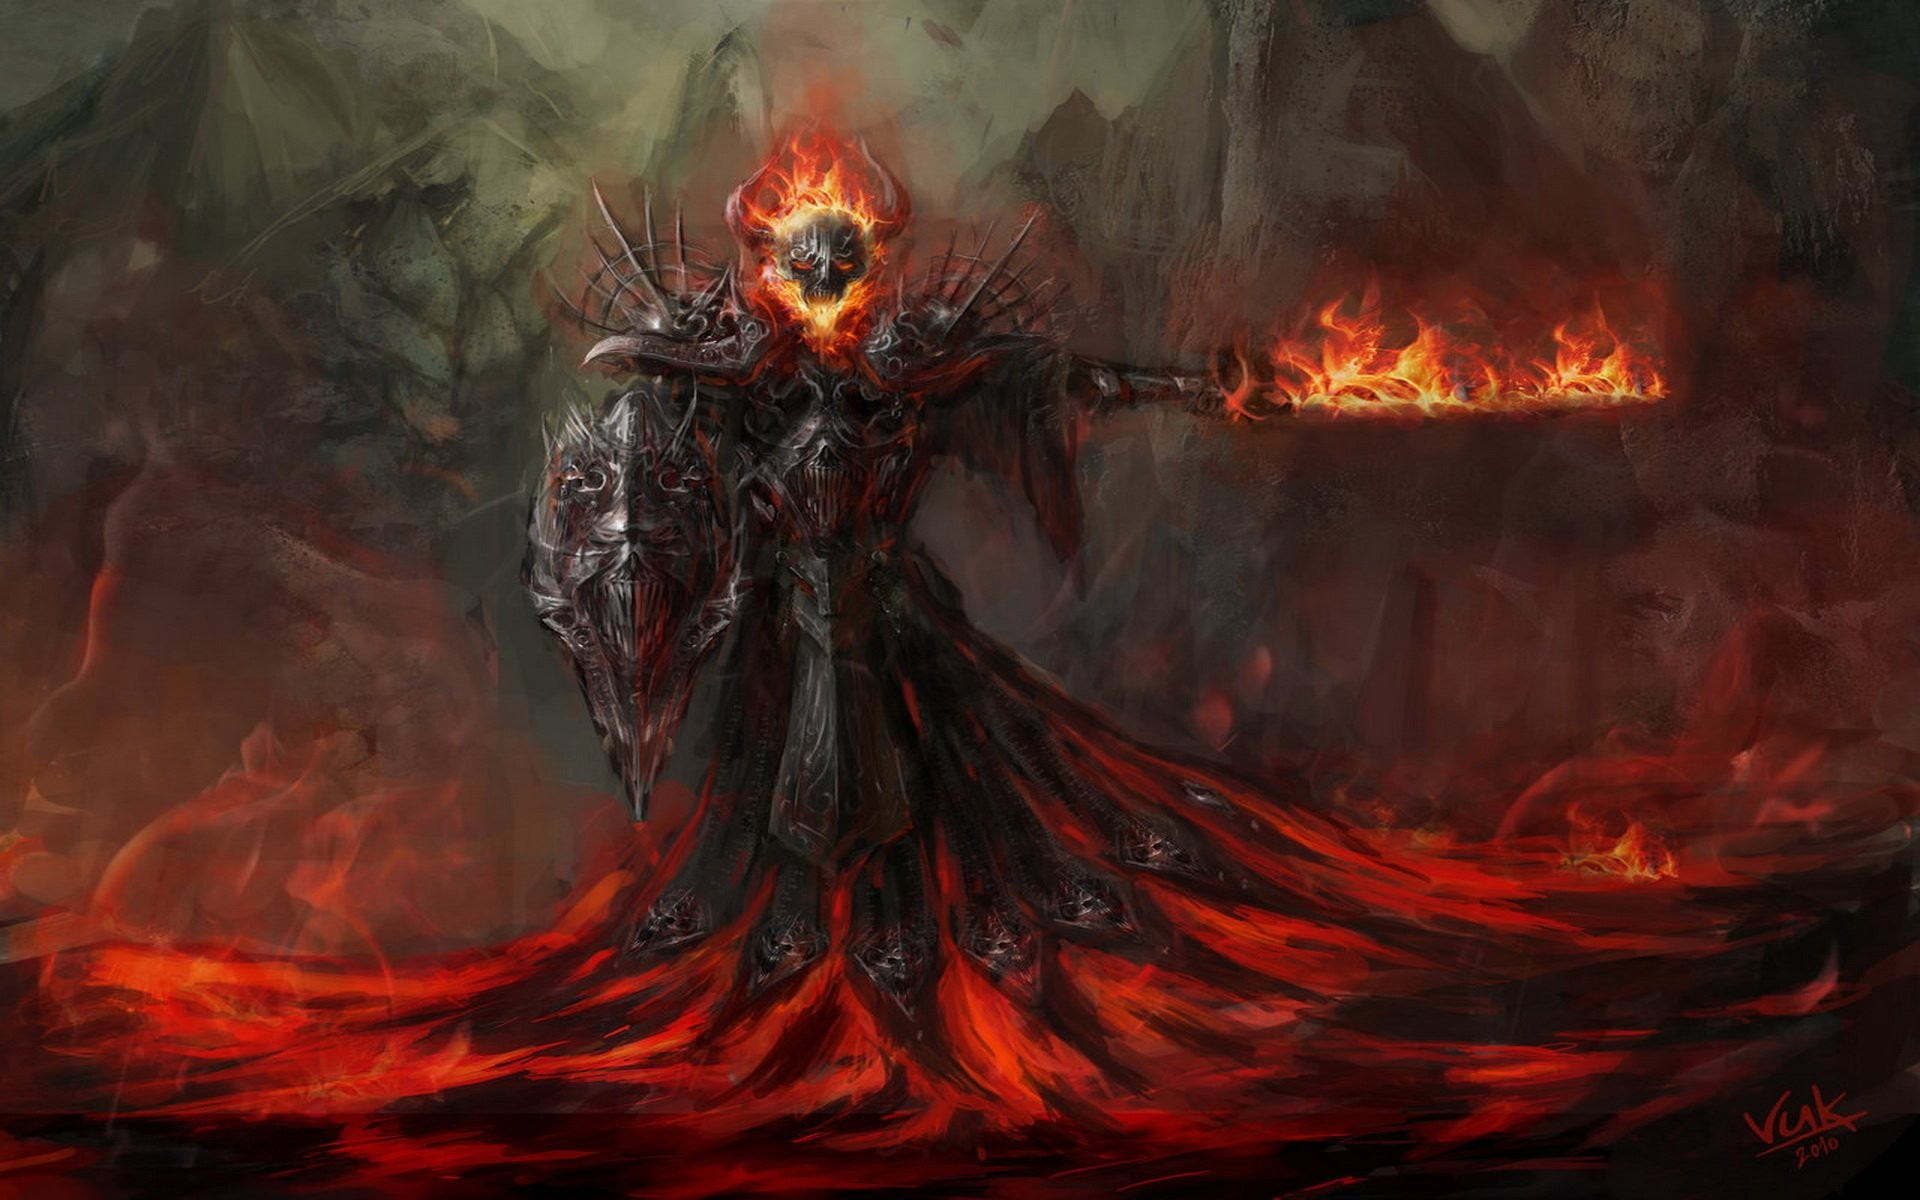 Hell wallpaper hd 76 images - Hd wallpapers of darkness ...